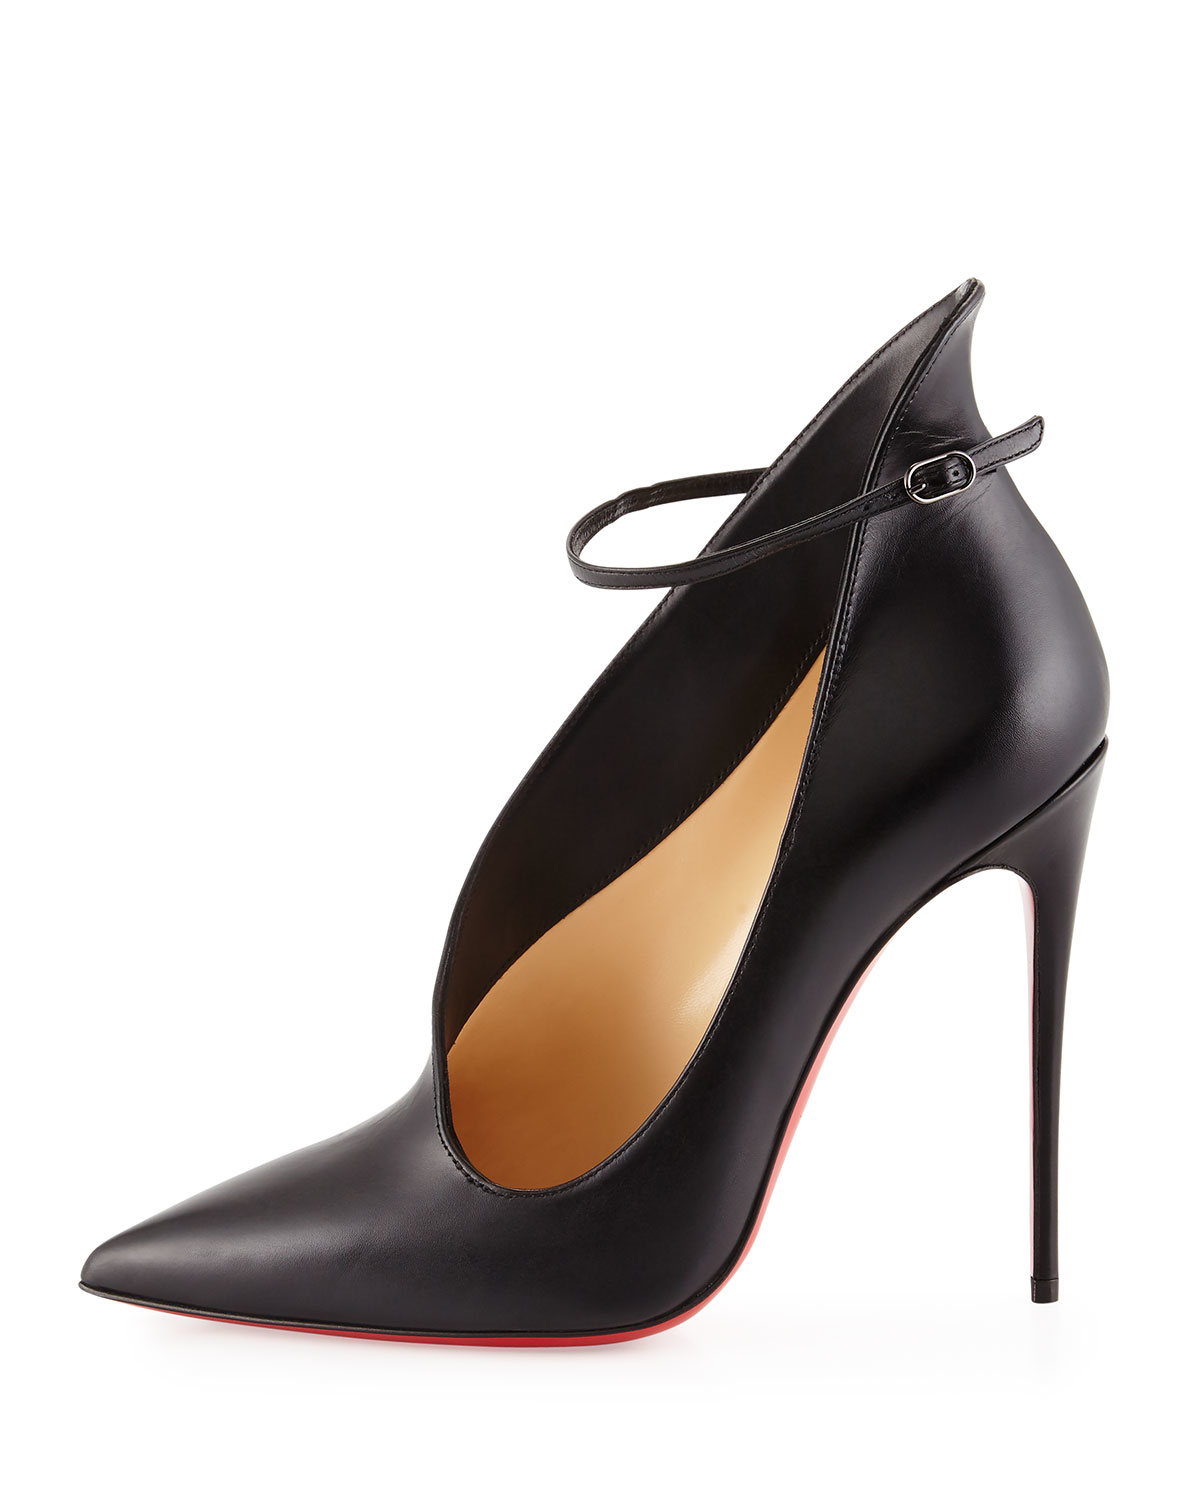 Christian Louboutin Suede Zip-Embellished Pumps discount for sale hhqB3